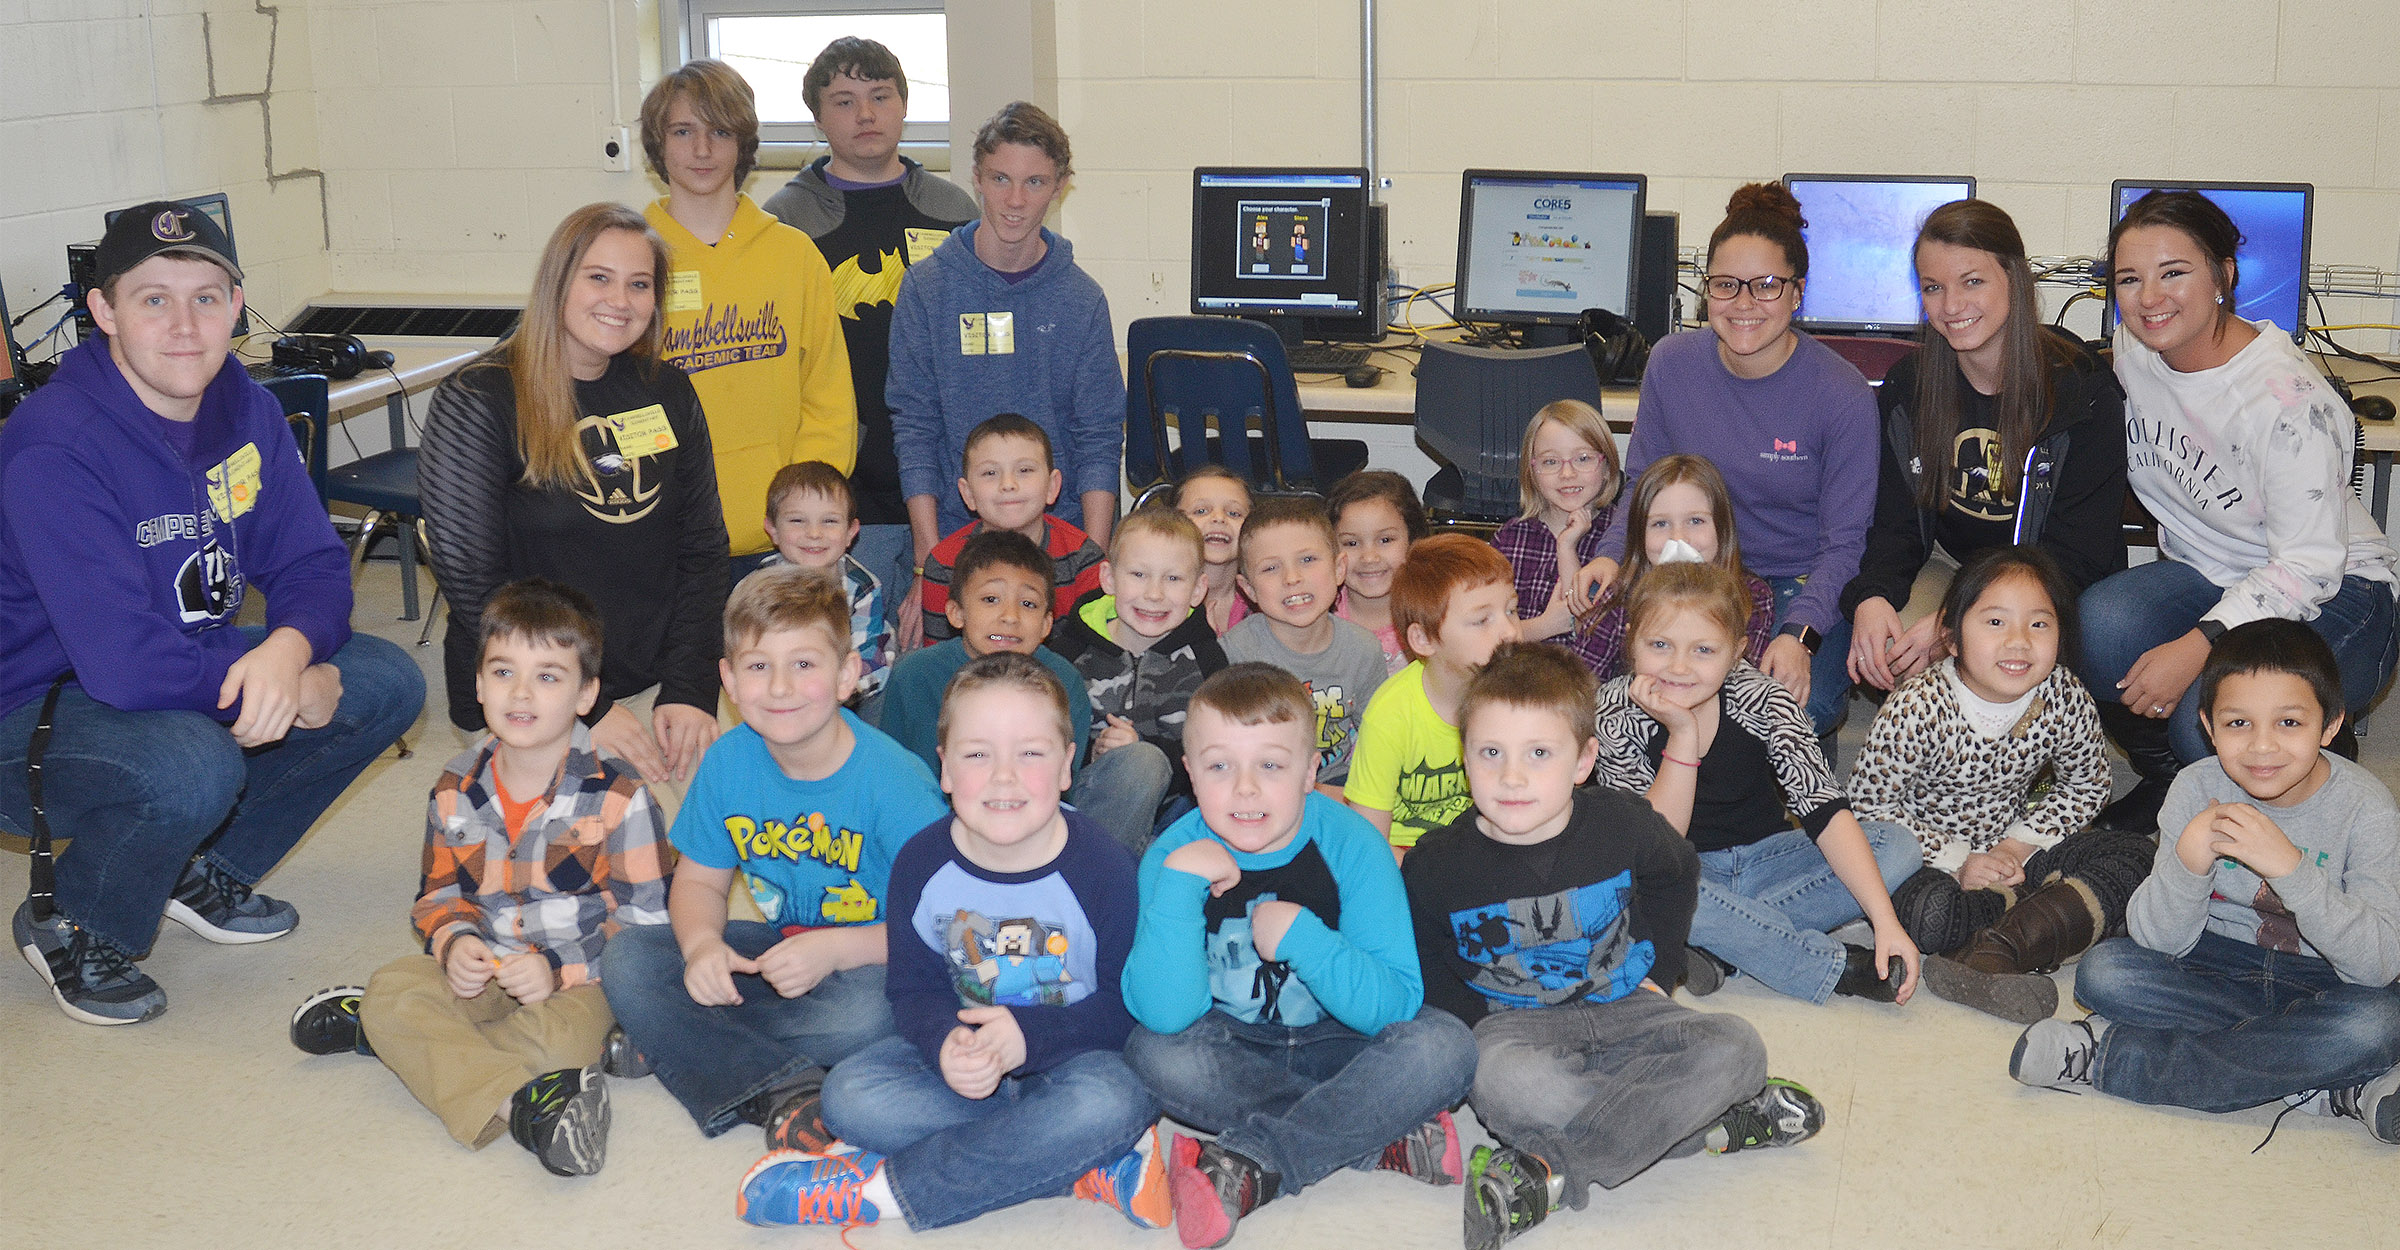 CHS computer science students taught Amanda Greer's first-grade students about computer coding. From left, in back, are seniors Jared Brewster and Brenna Wethington, freshmen Tristin Lopez and Conner Riley, sophomore Payton Reynolds and seniors Breanna Spaulding, Caylie Blair and Kailey Morris.